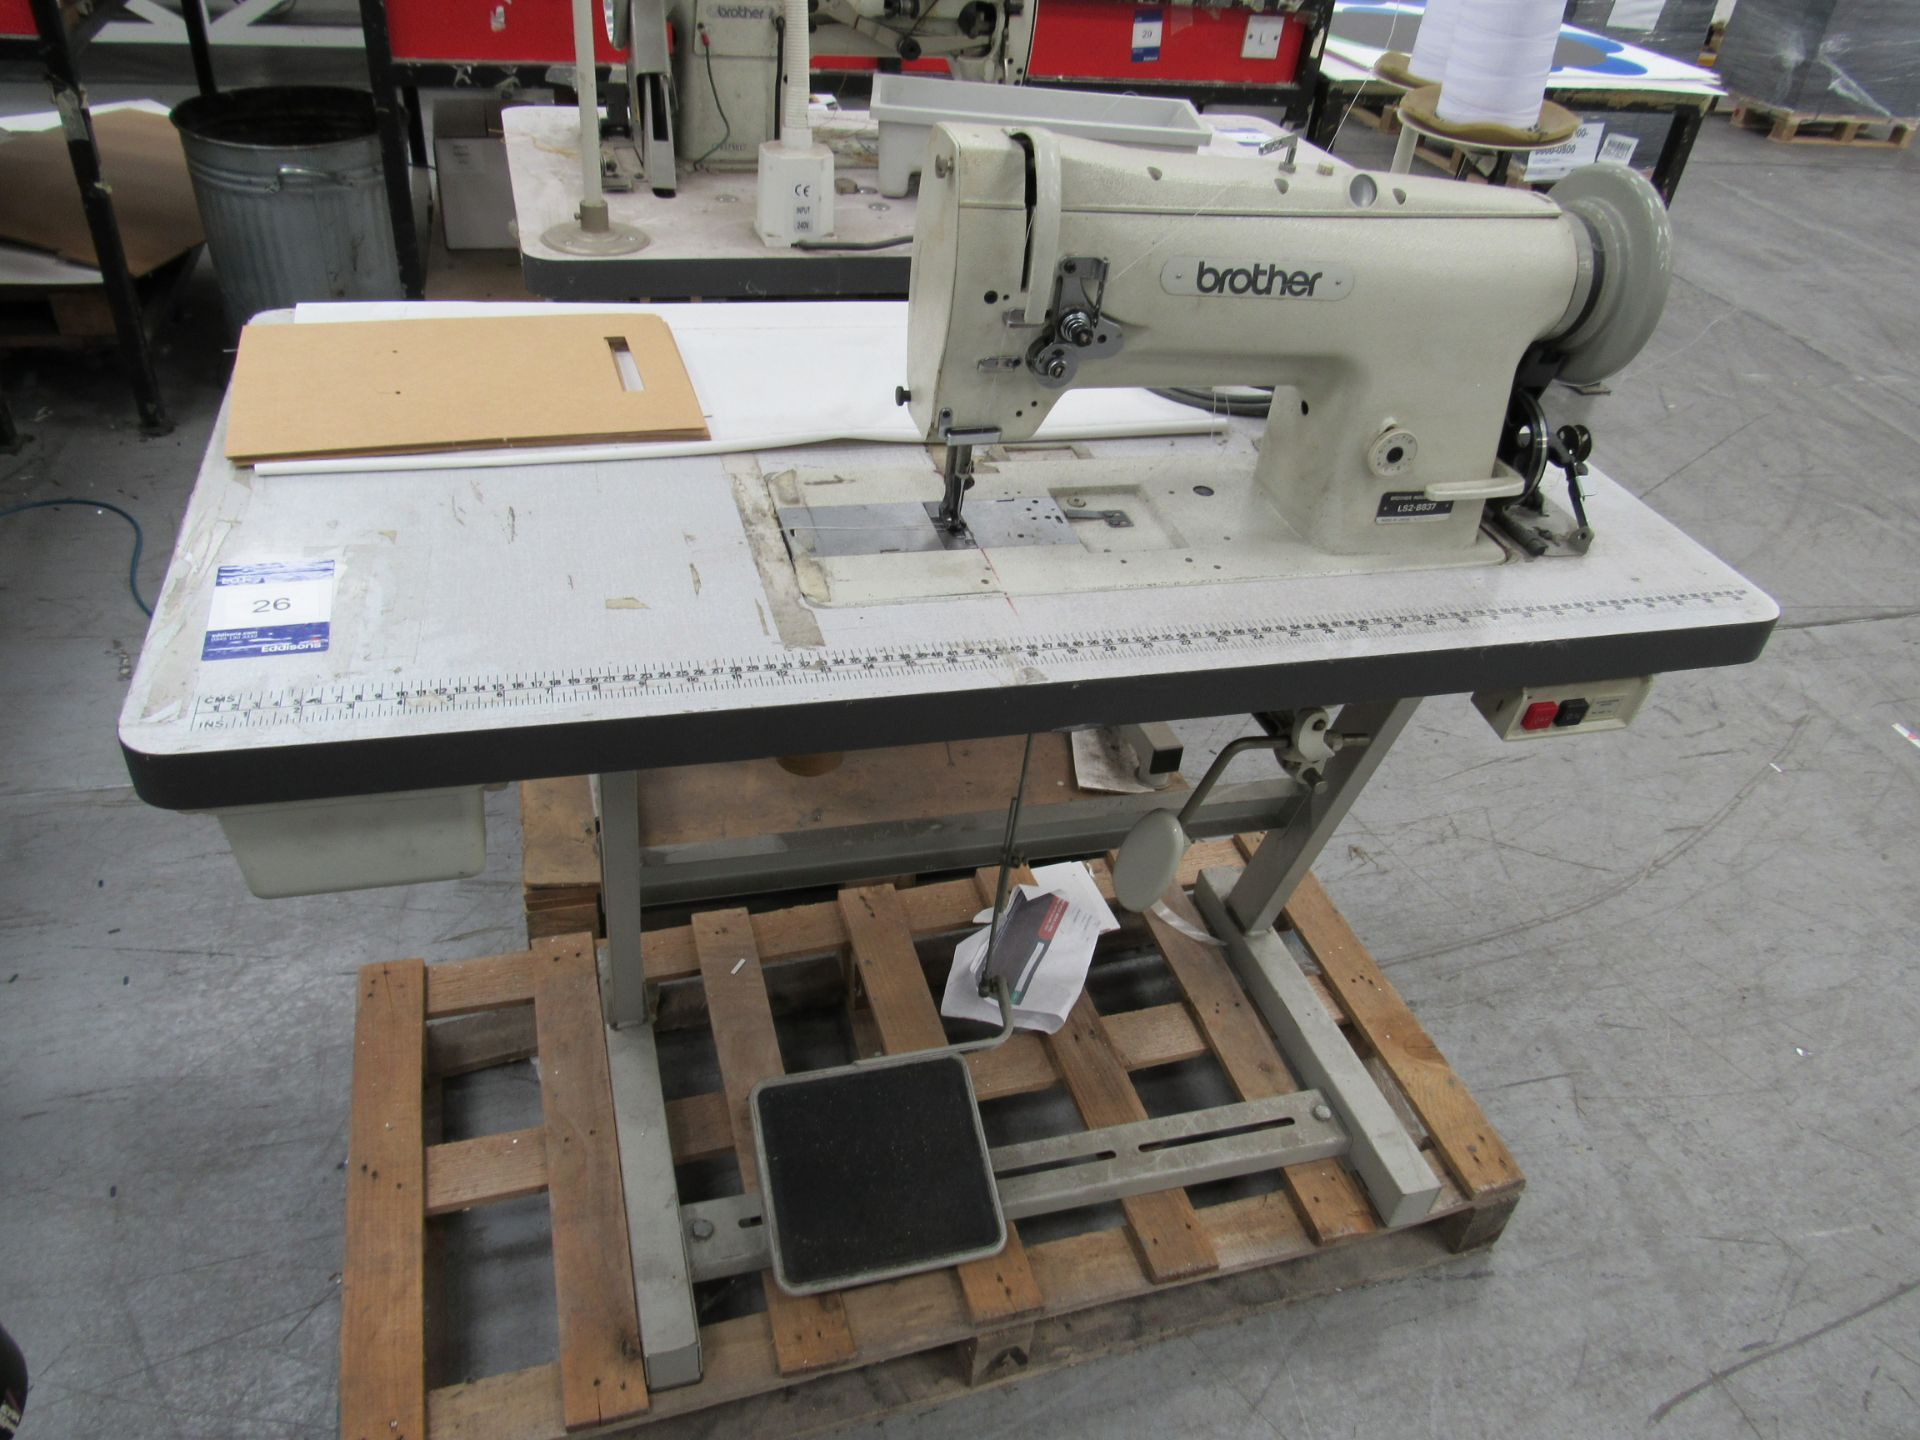 Brother LS2-B837 Industrial Sewing Machine Serial Number M3538580 - Image 2 of 3